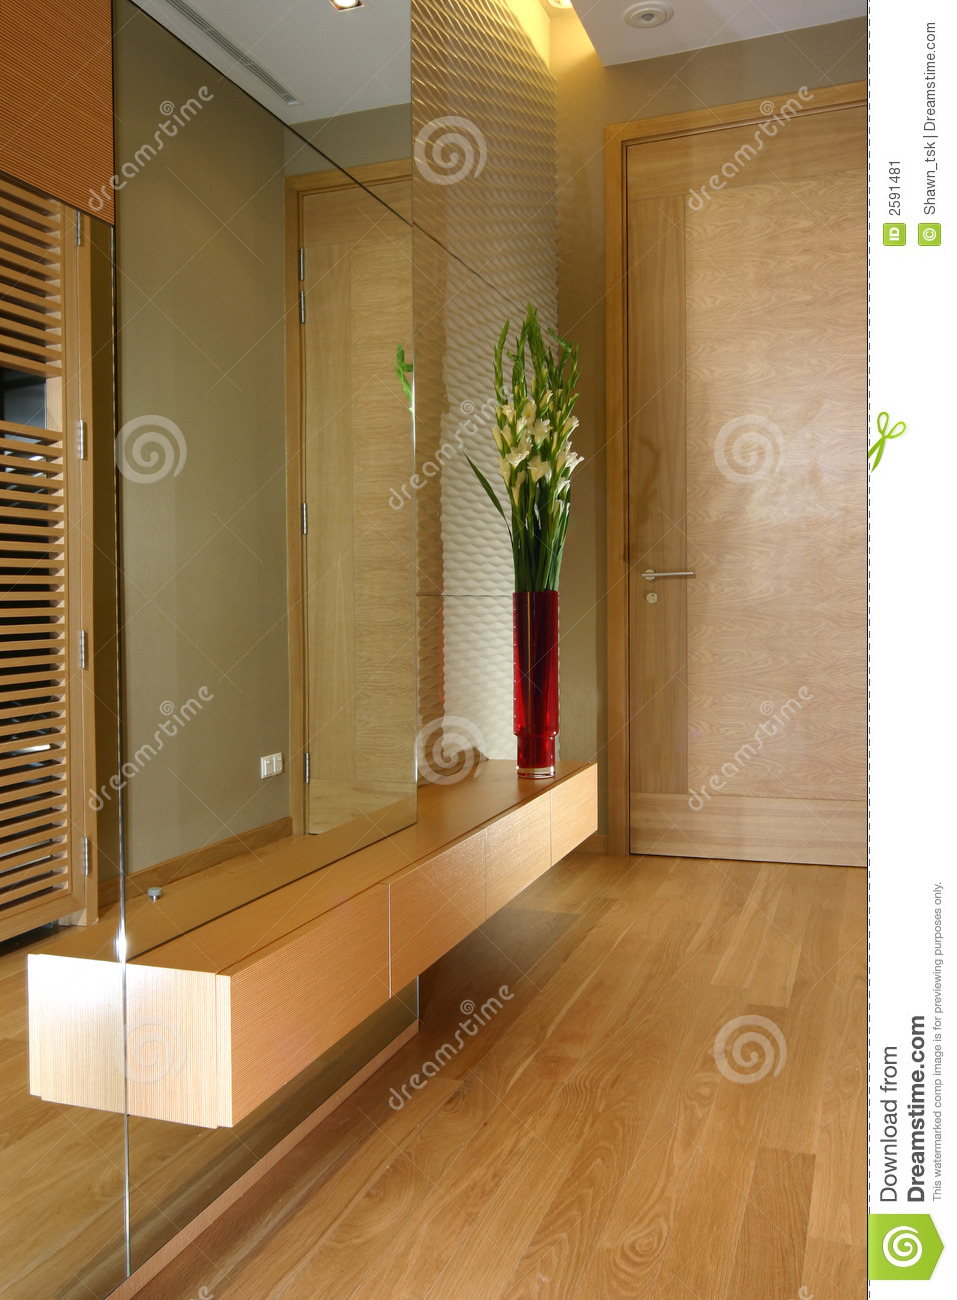 Interior Design Foyer Stock Image Of Vanity Wall